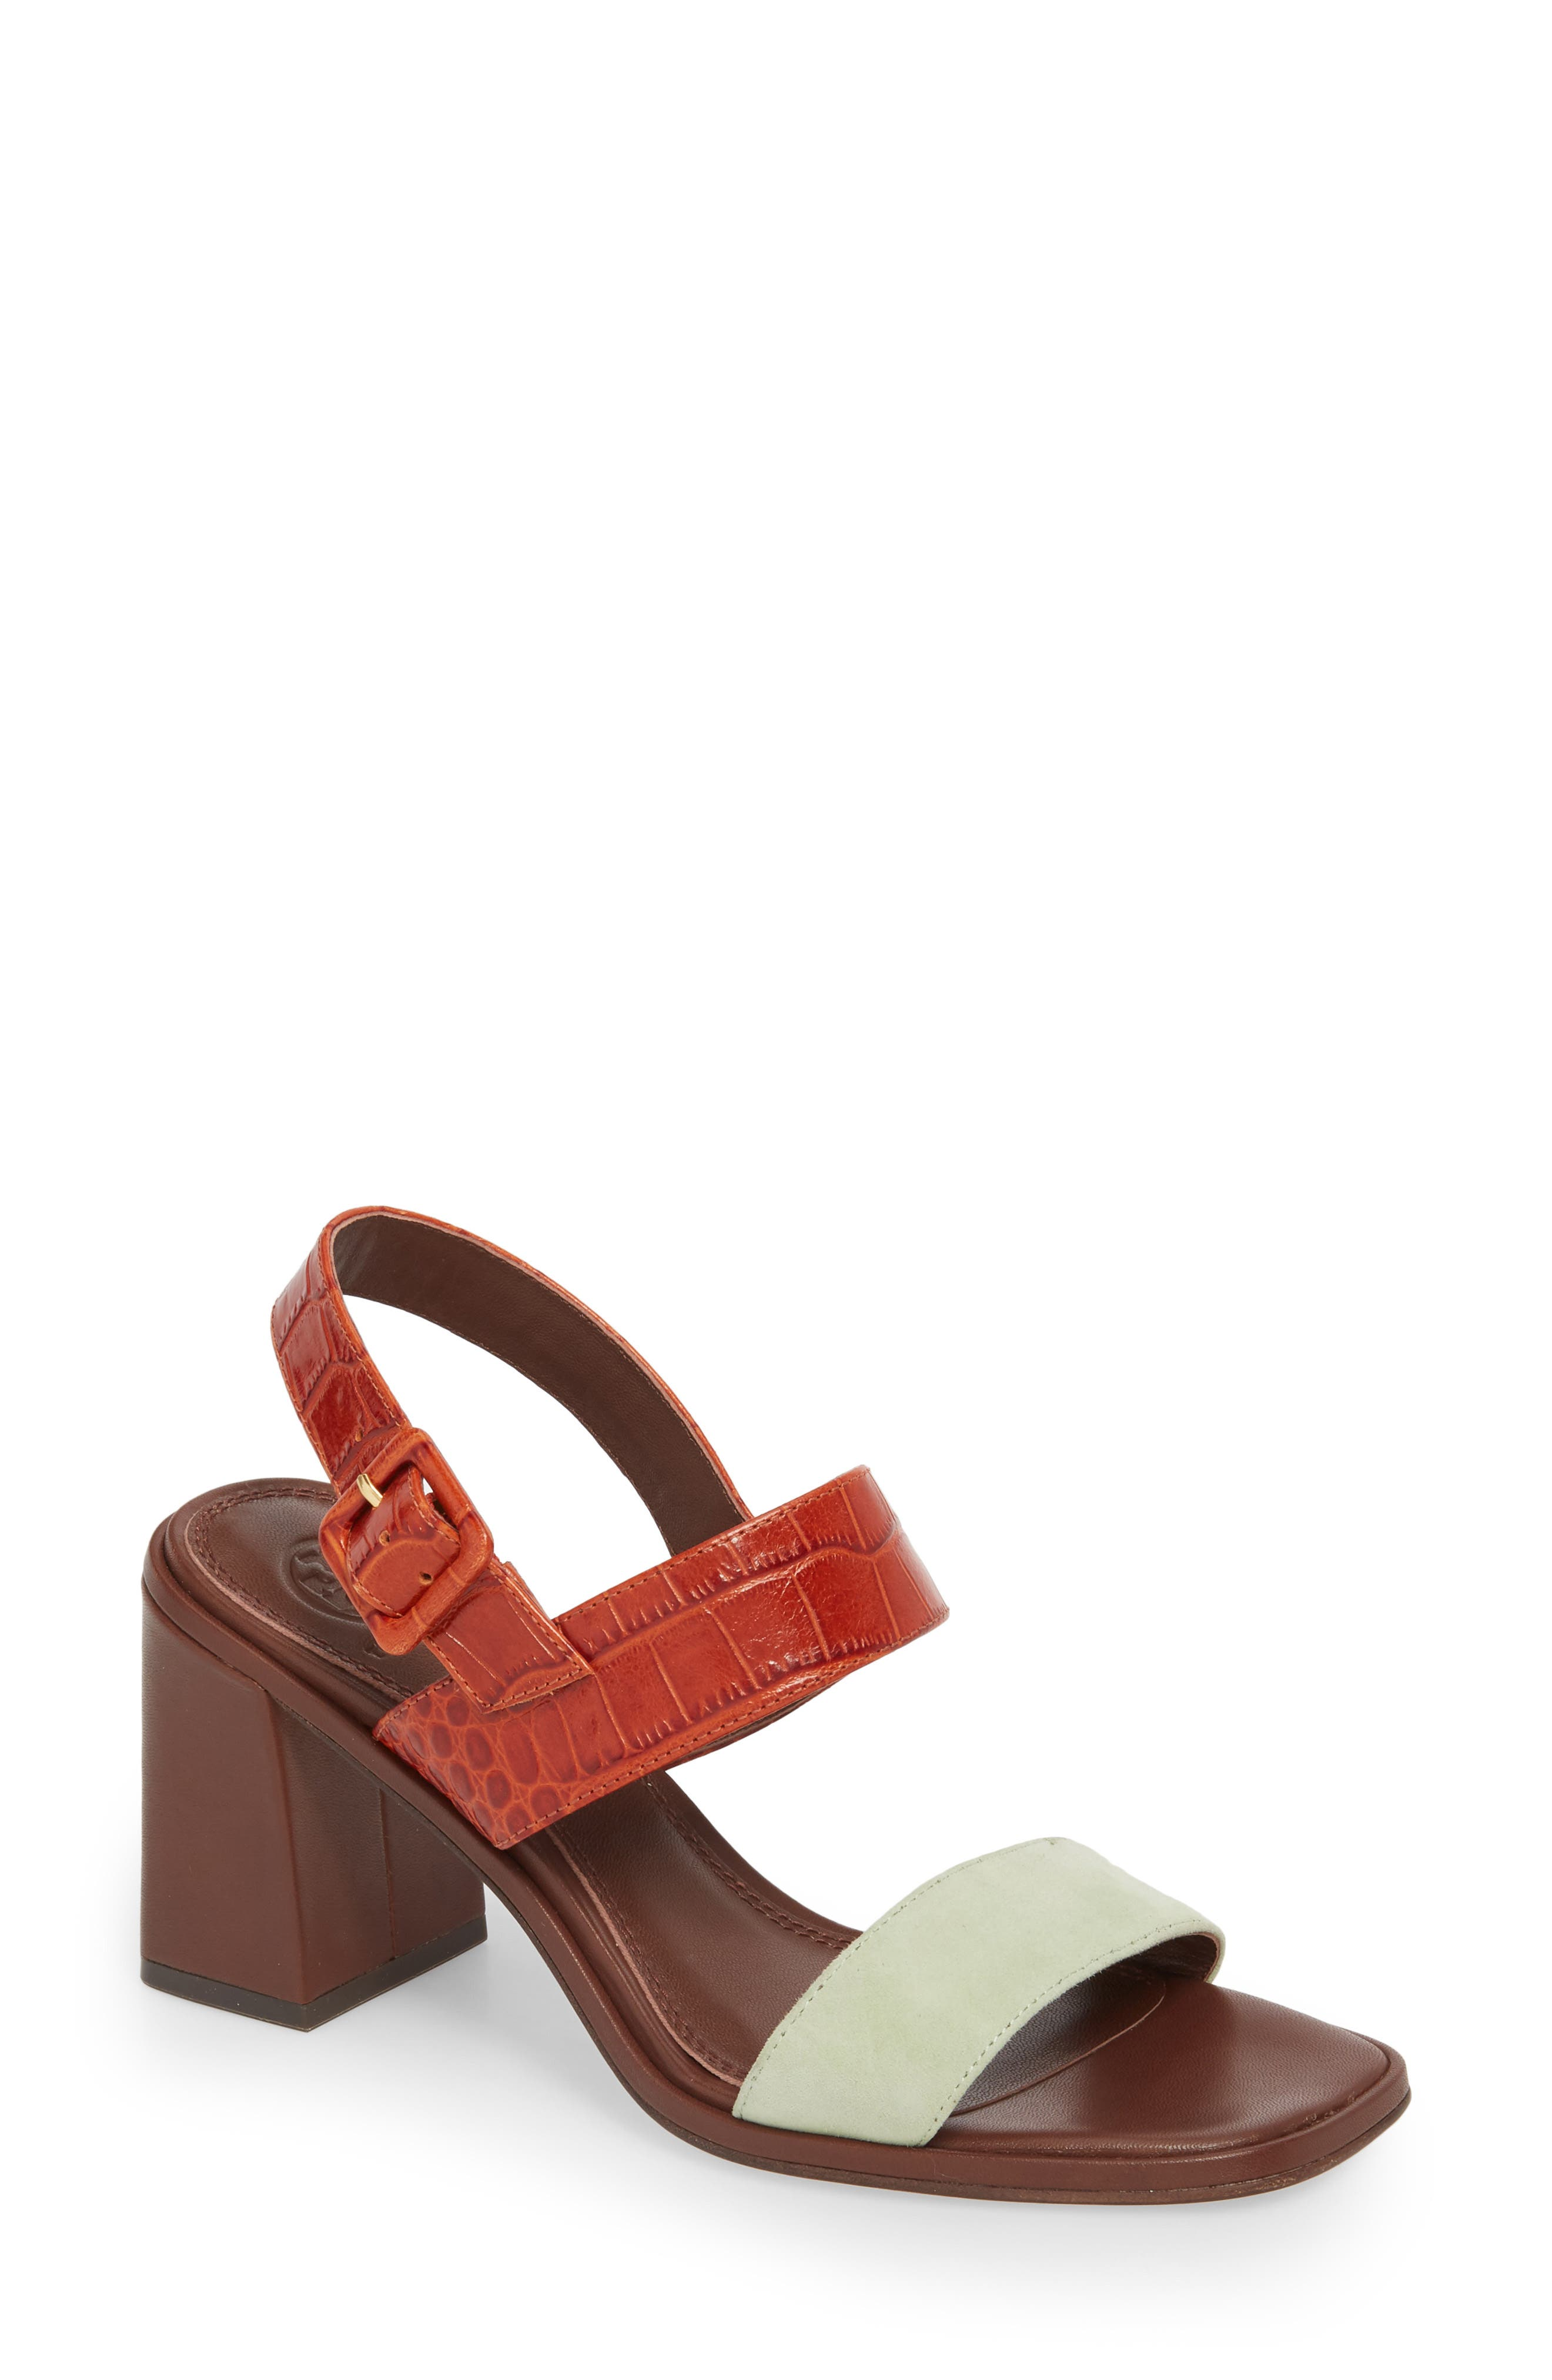 DELANEY COLOR-BLOCK SANDAL 298 Garden Sage / Desert Spice SEA SHELL PINK / MALBEC shopping online sale online clearance best wholesale official site for sale high quality cheap price dJi3fM1